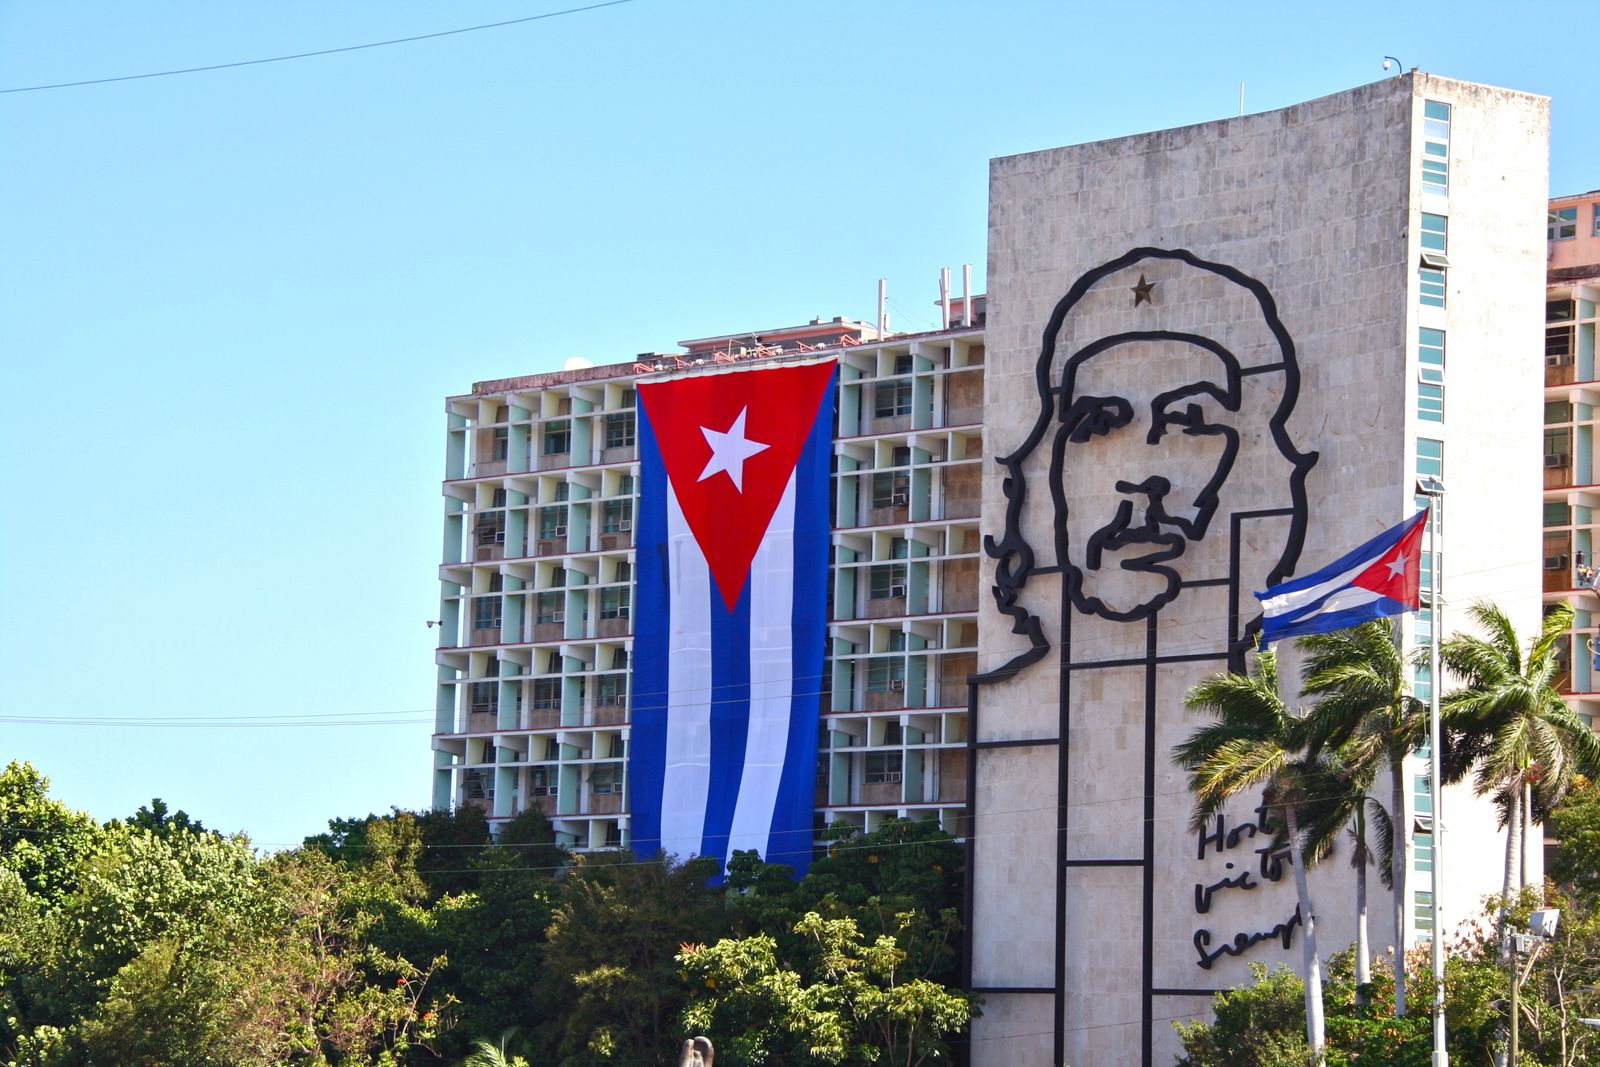 revolution in cuba an essay on understanding